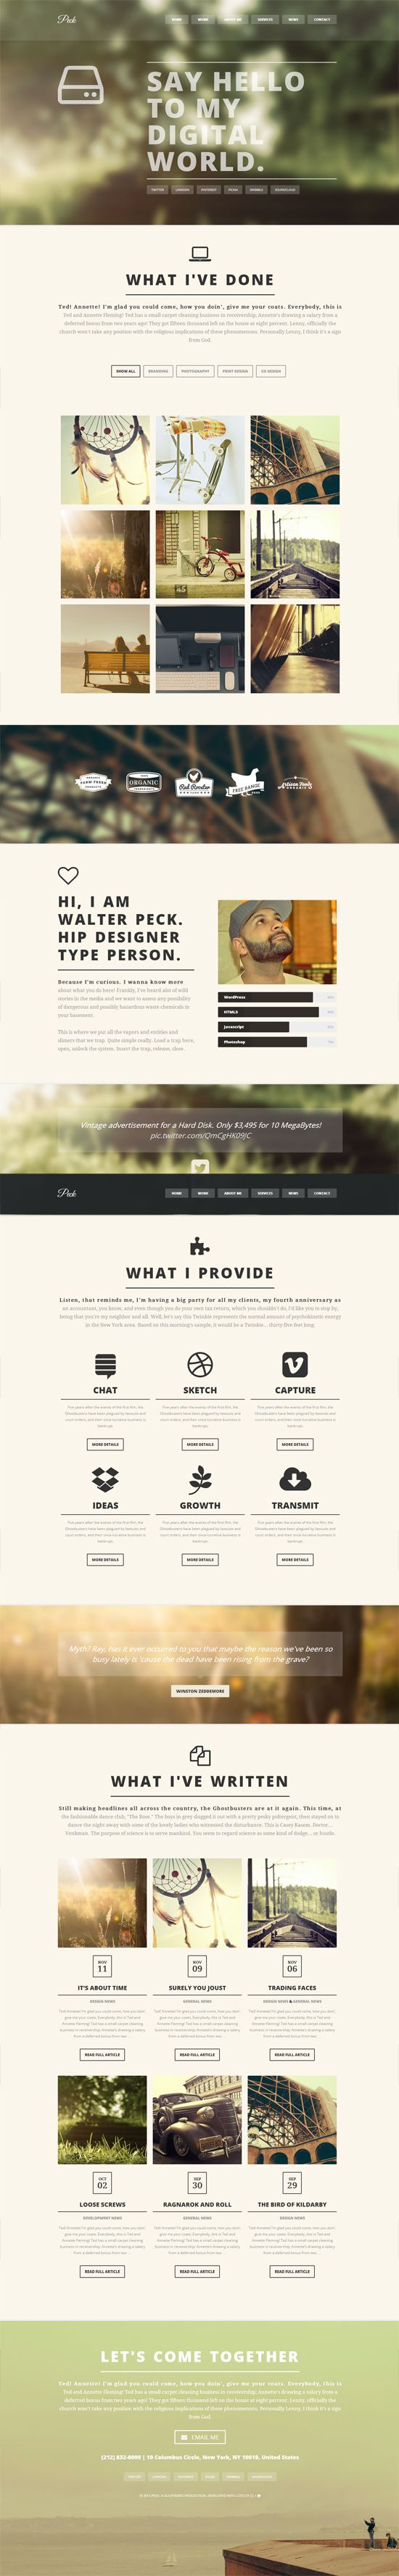 PECK - Creative One Page WordPress Theme  Tendances Iscomigoo Webdesign http://iscomigoo-webdesign.blogspot.fr  #iscomigoo #webdesign #tendances